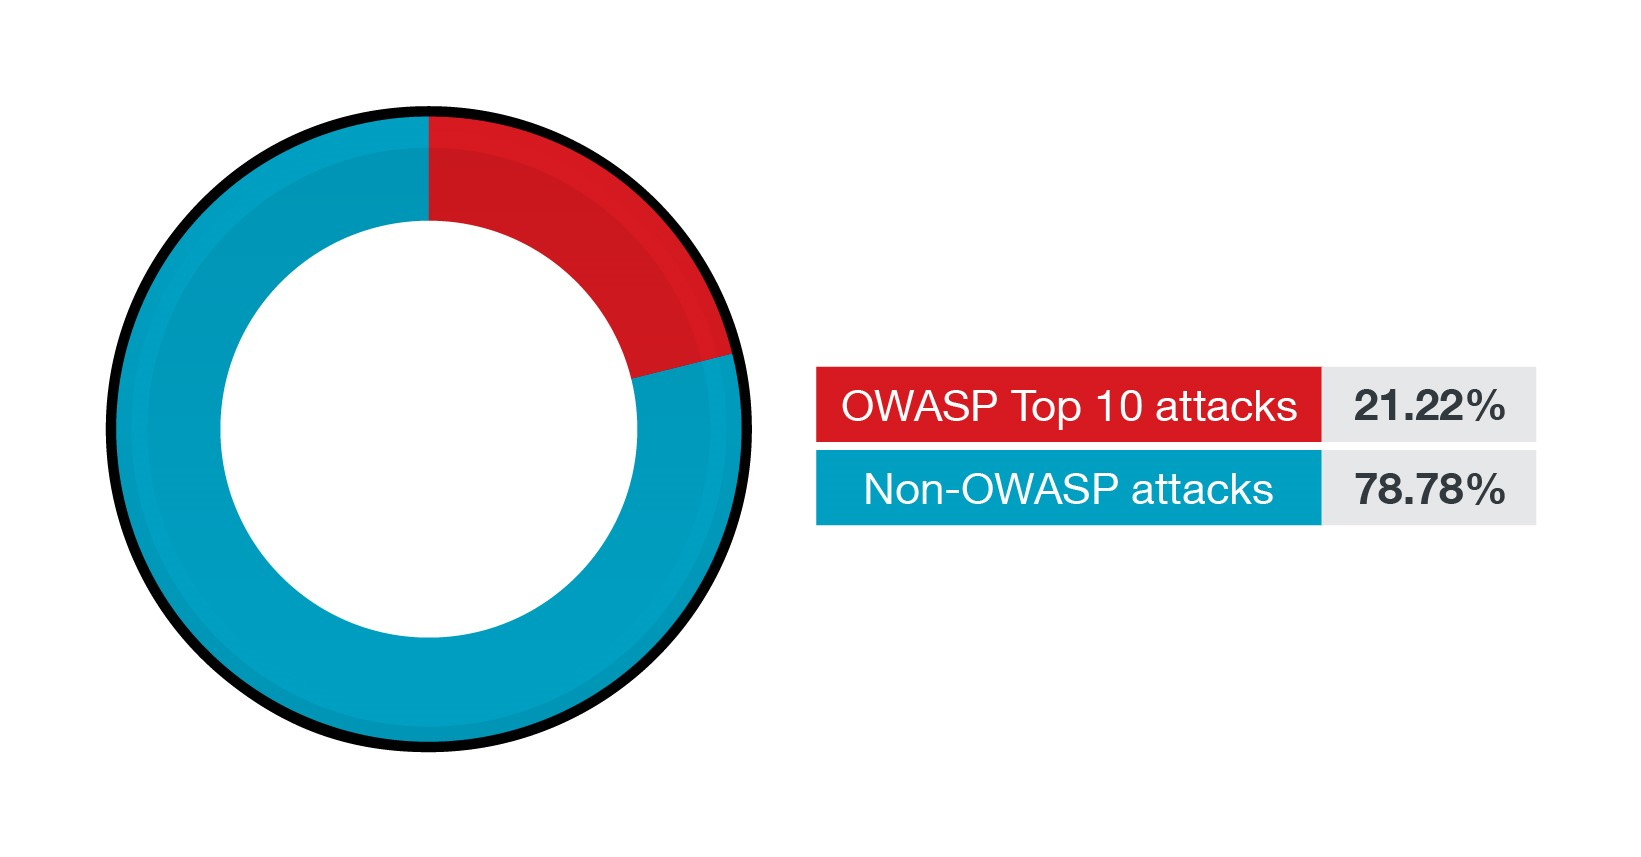 The percentage of OWASP Top 10 attacks and non-OWASP attacks in the first half of 2021